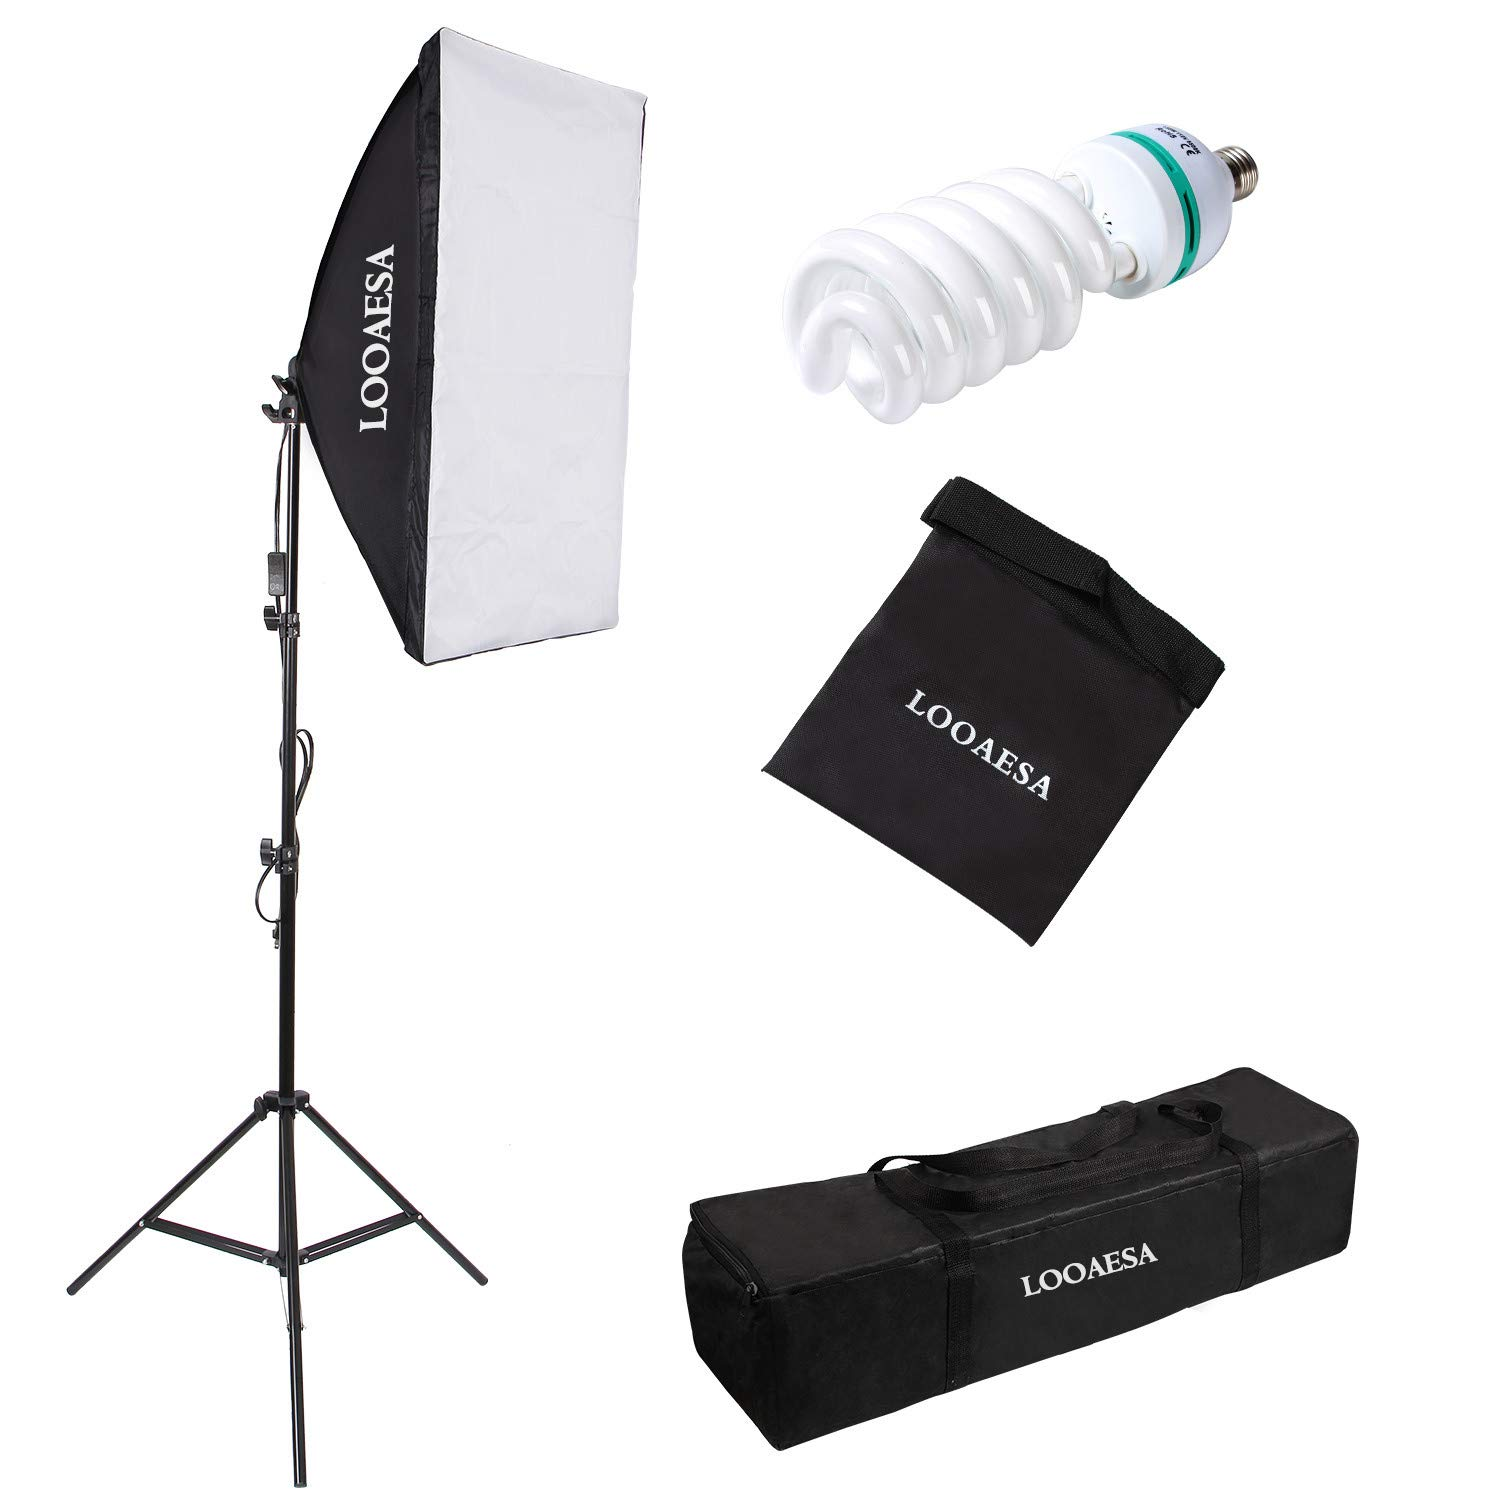 1350W Photography Lighting Softbox Lighting Kit Continuous Photo Video Lighting System with Sandbag and 5500K Bulb 20''X28'' Professional Studio Lights Equipment for Youtube Filming Portraits by LOOAESA by LOOAESA